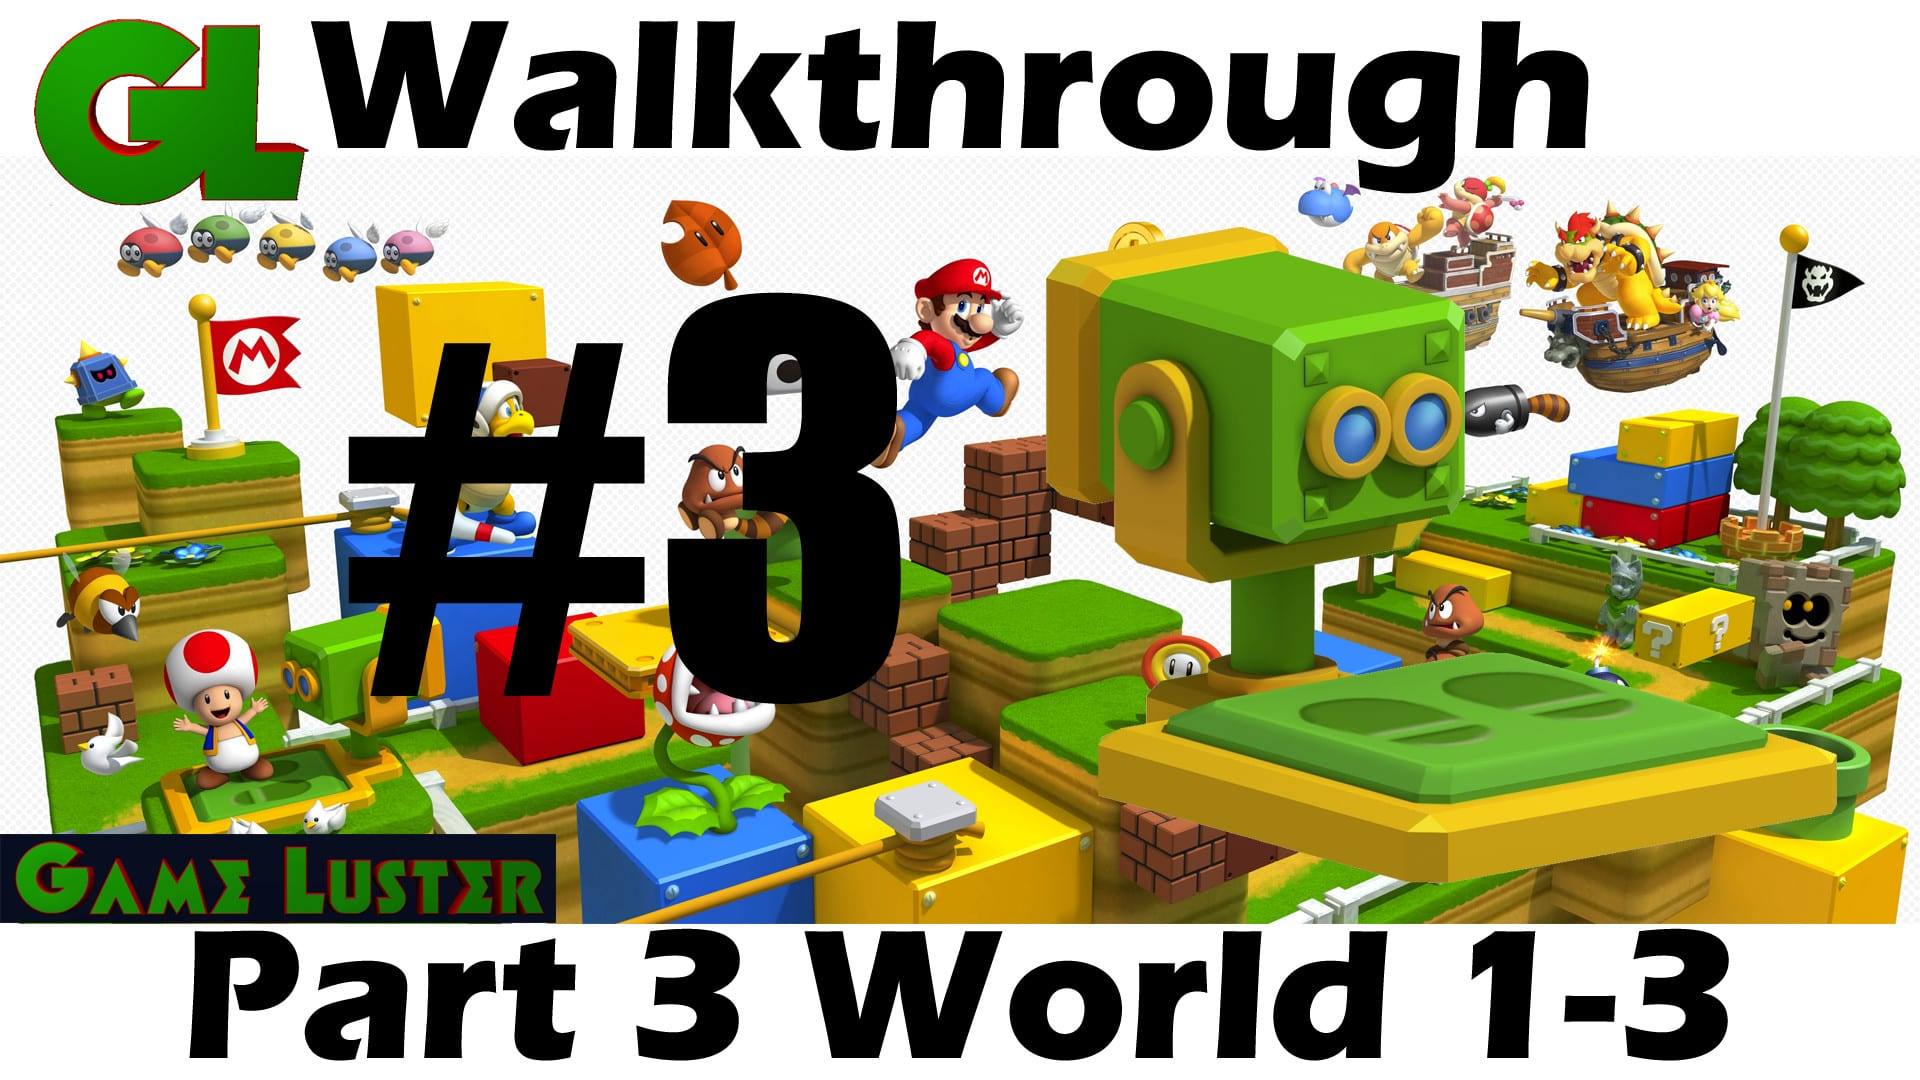 Super Mario 3d Land Walkthrough Part 3 World 1 3 Gameluster